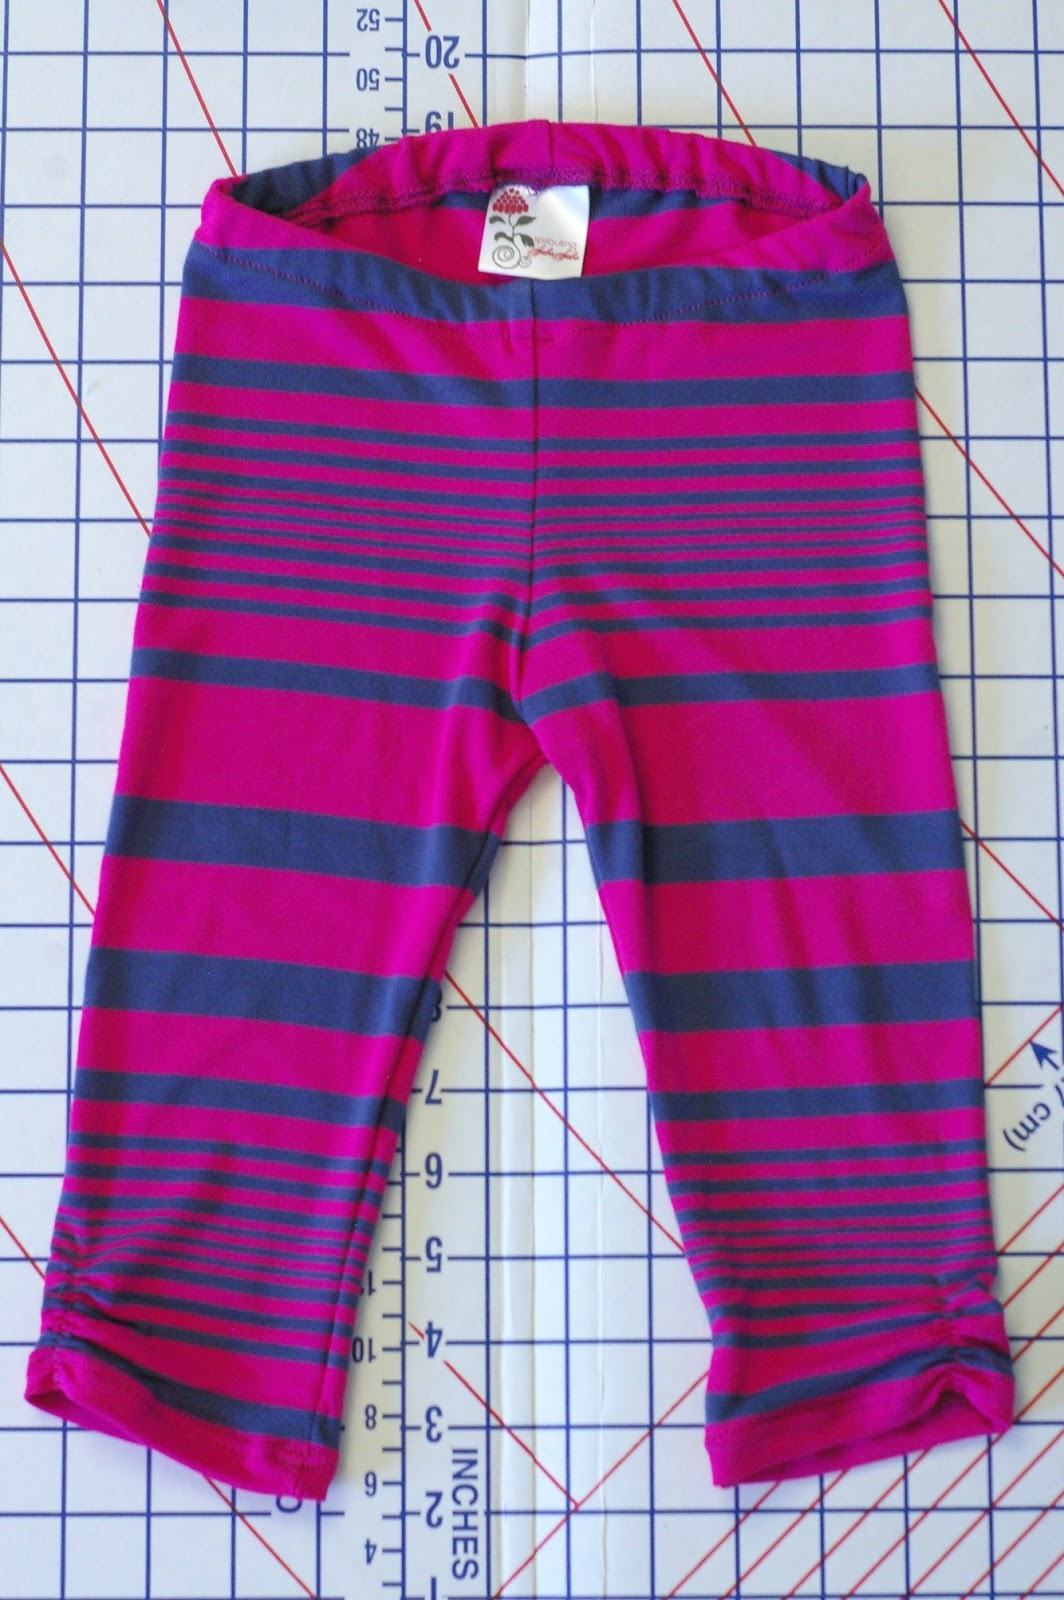 http://sproutingjj.blogspot.ca/2014/08/free-leggings-pattern-by-em-patterns.html